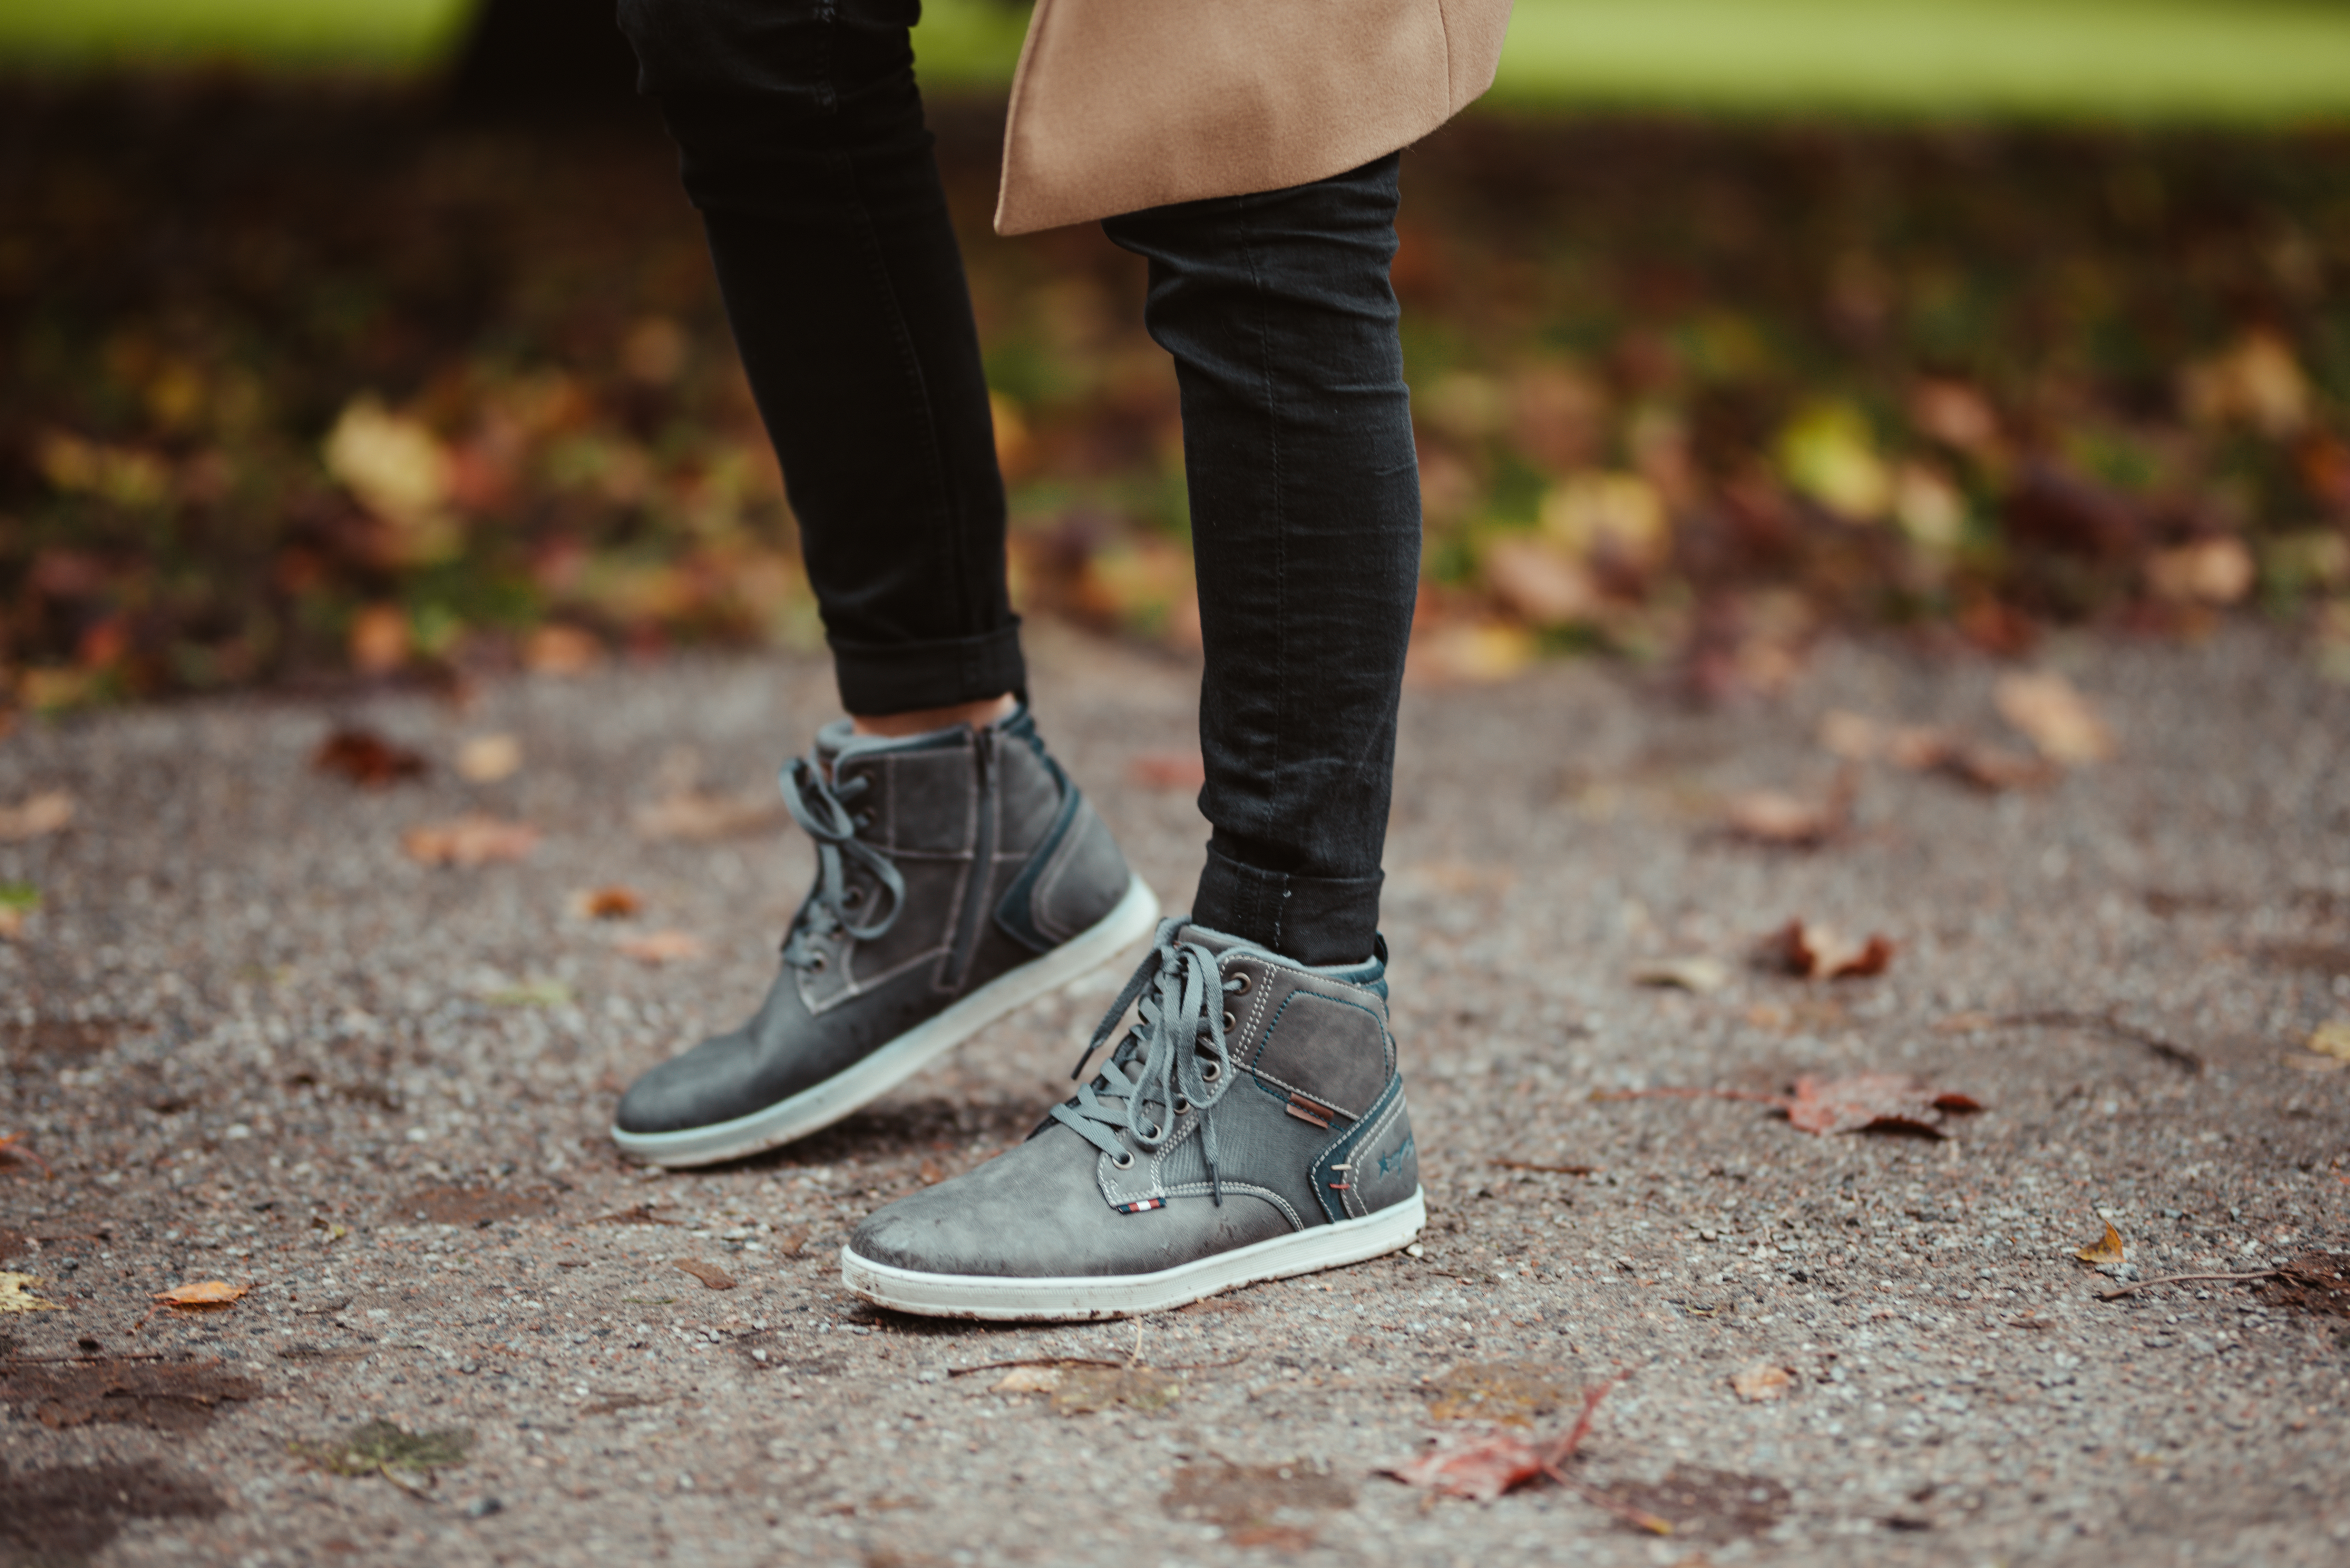 6a7deab8f8b3 As you also know, I love high to mid tops when it comes to sneakers and  these brown/navy blueish mid cuts from Memphis One are a perfect compromise  when you ...